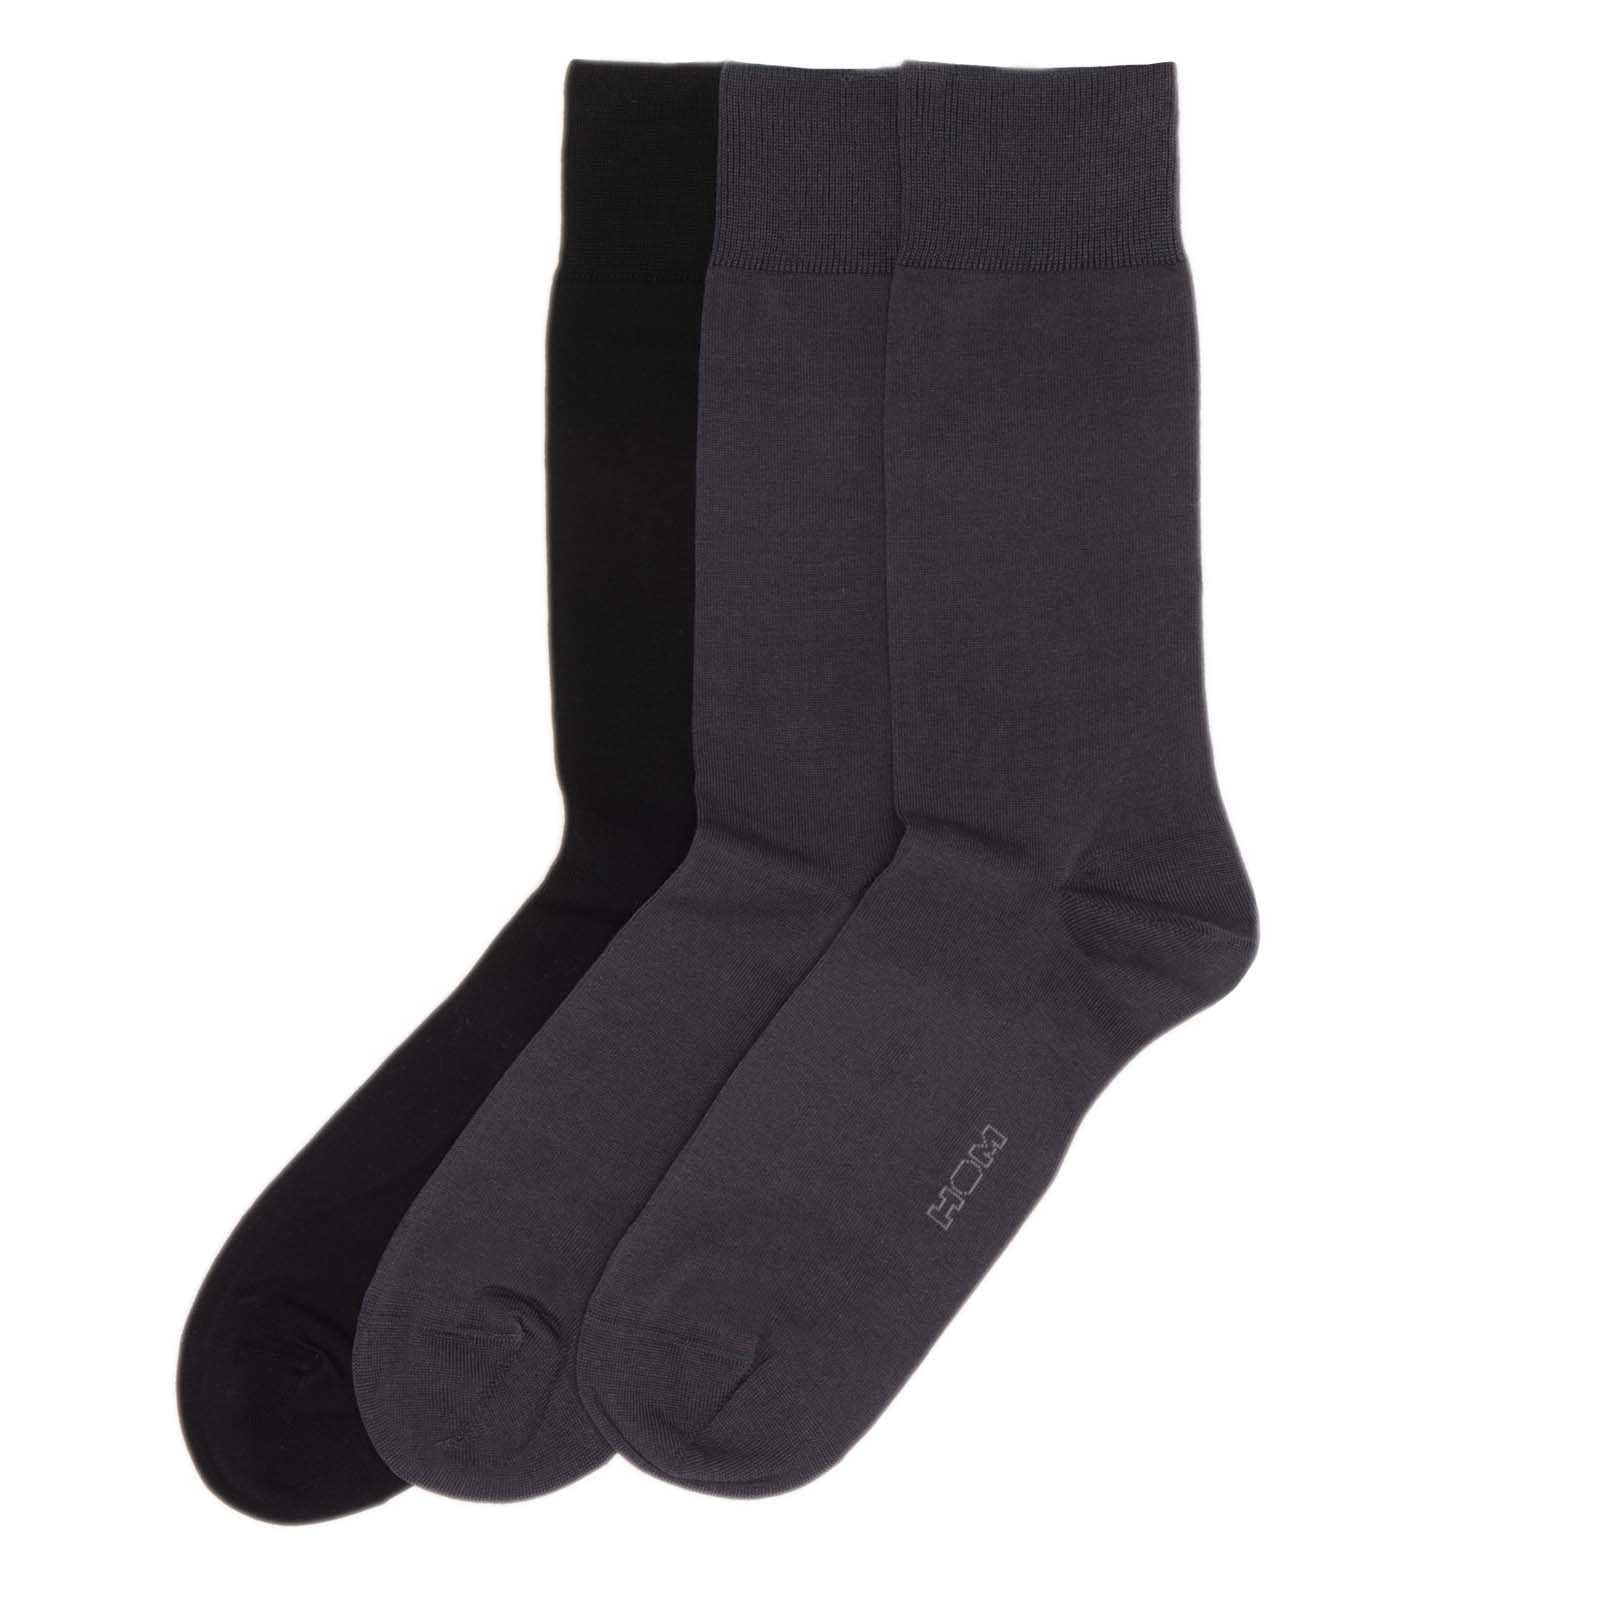 Pack of 3 Socks HOM 450631